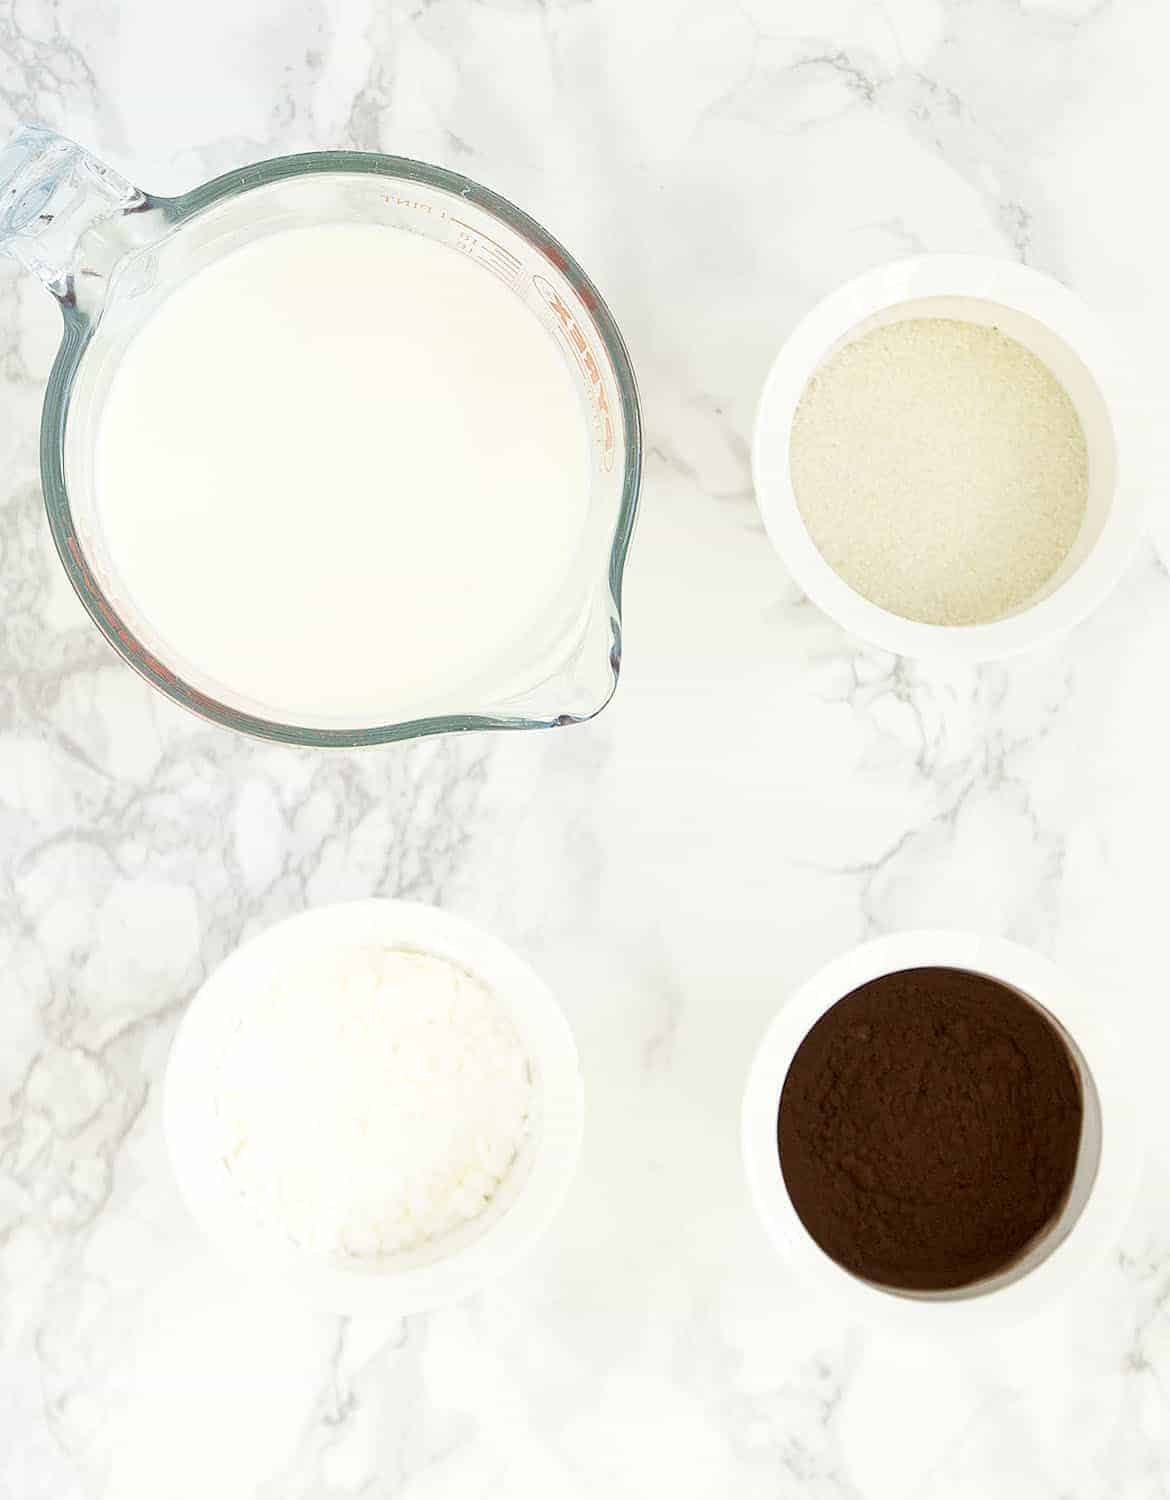 The ingredients for this easy chocolate pudding are arranges on a white marble table.